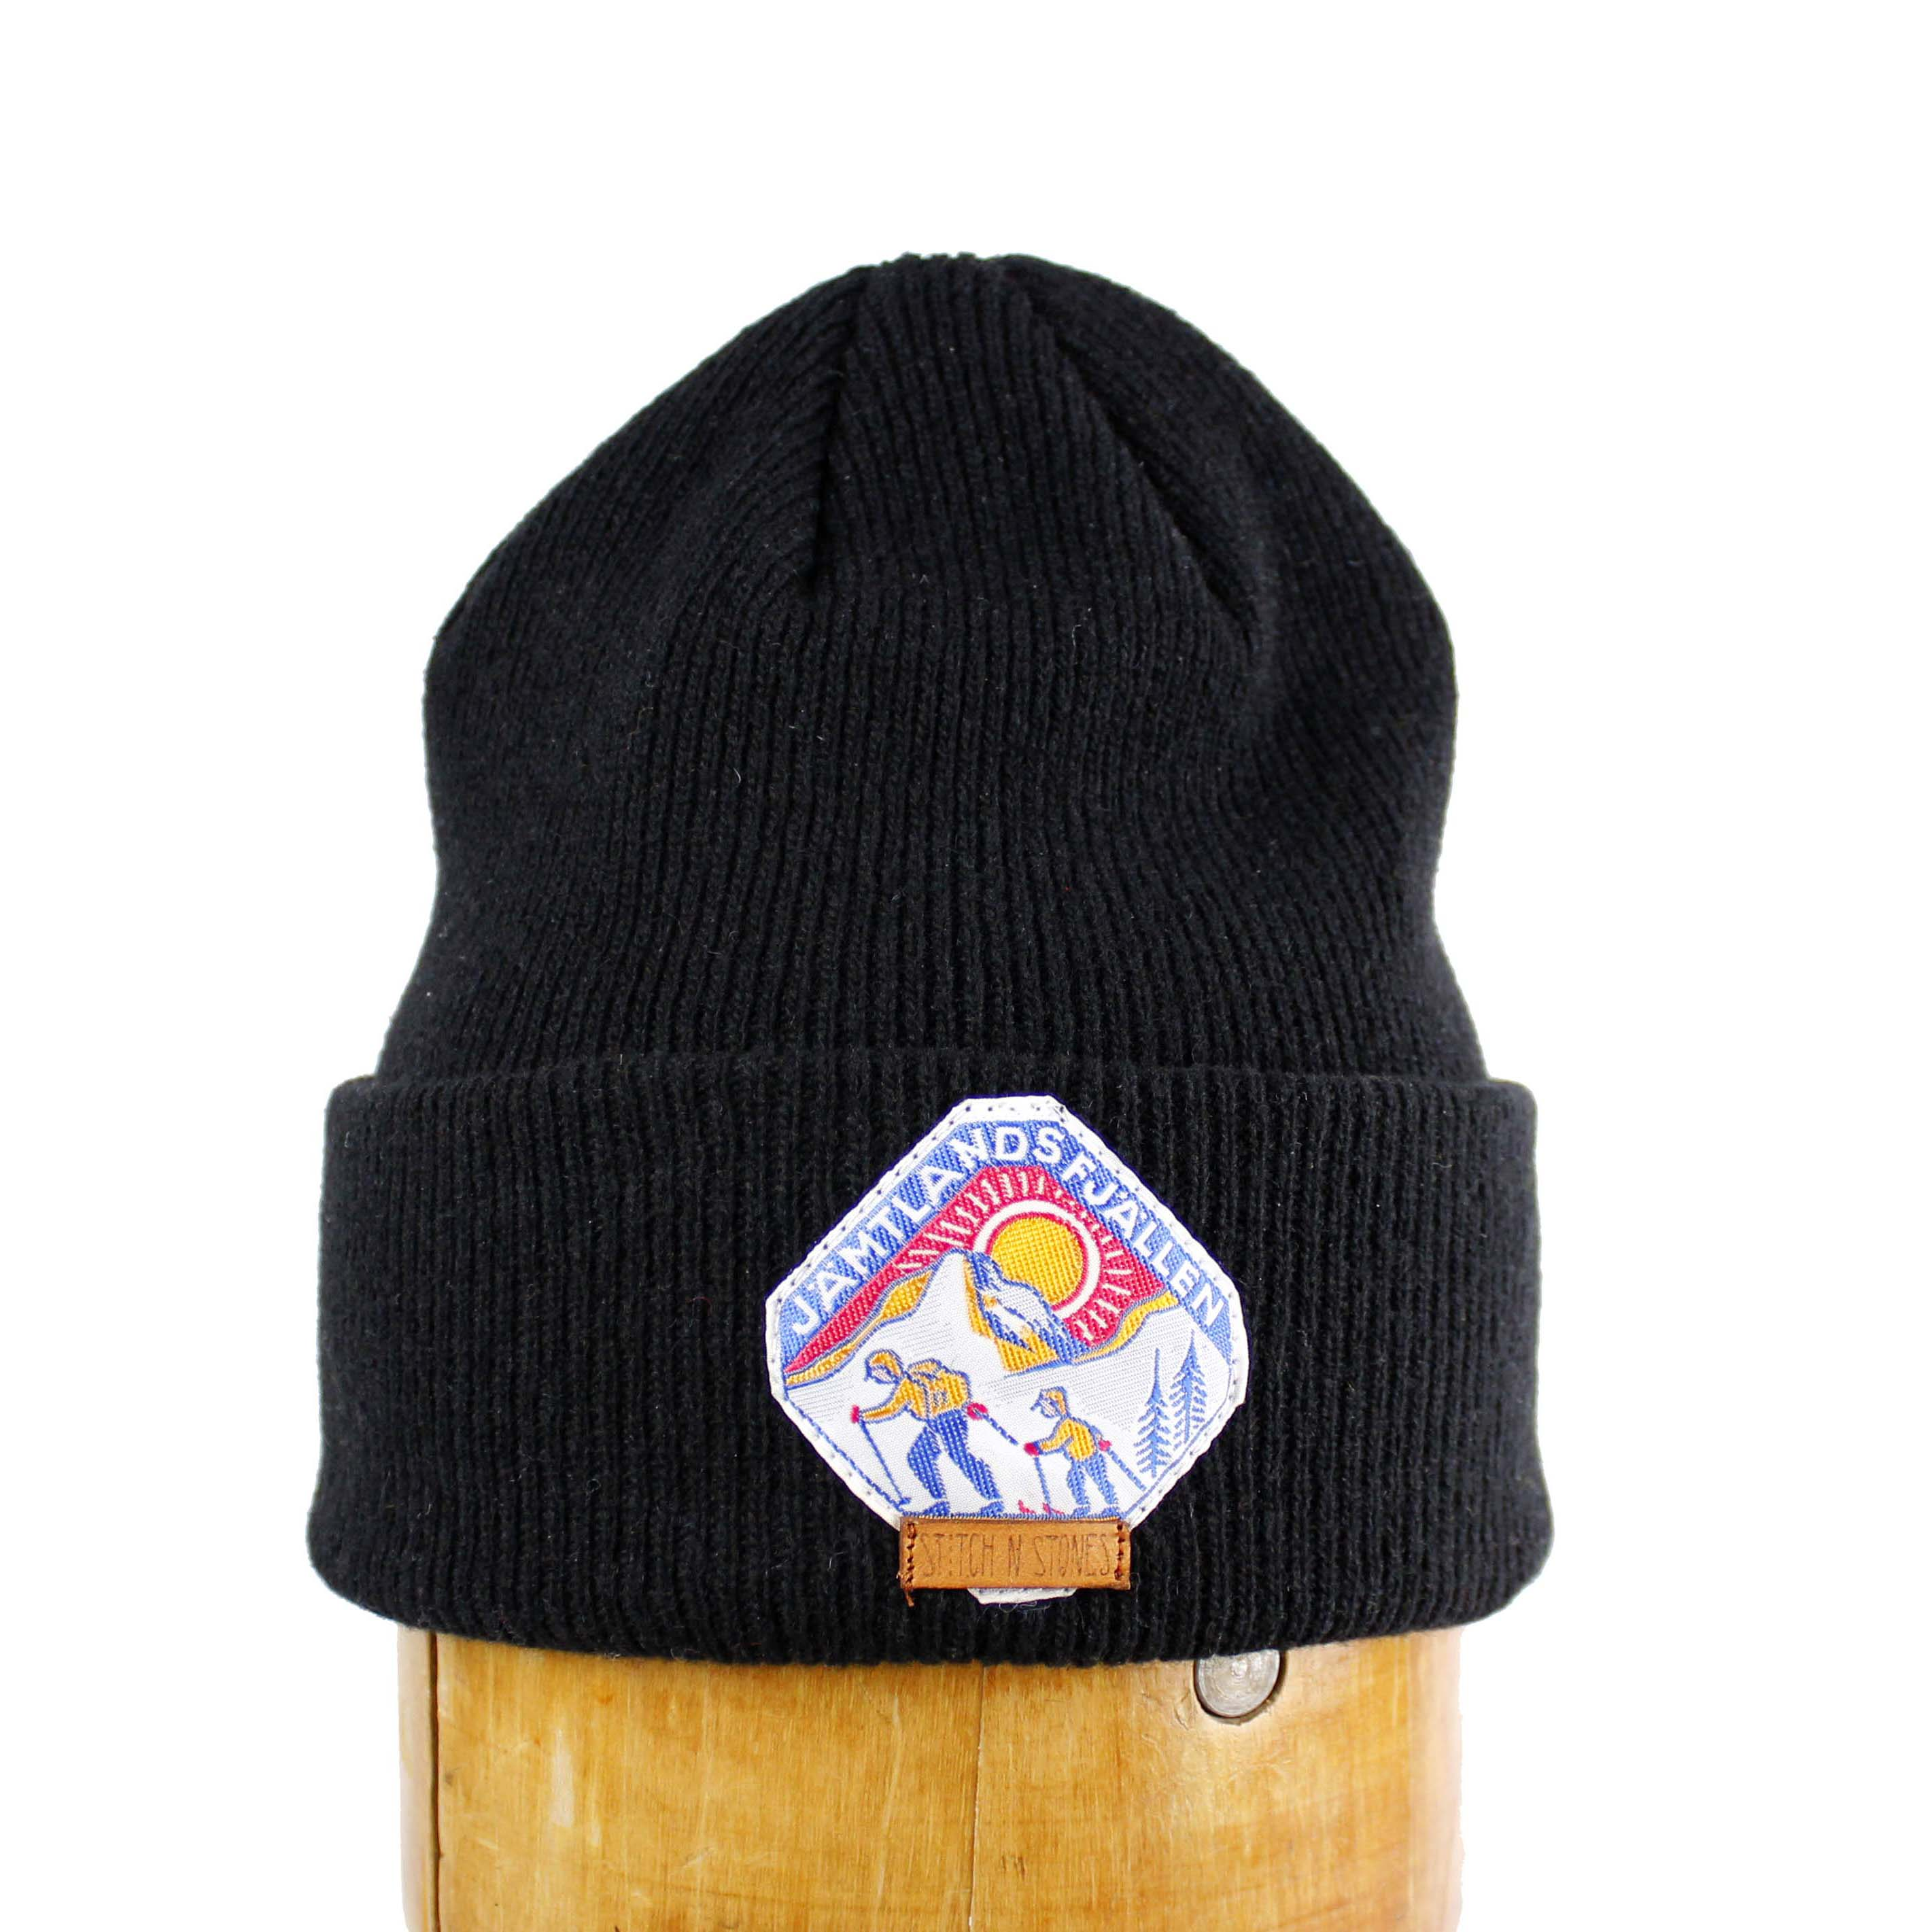 Lambswool Beanie with retro Jämtlandsfjällen patch